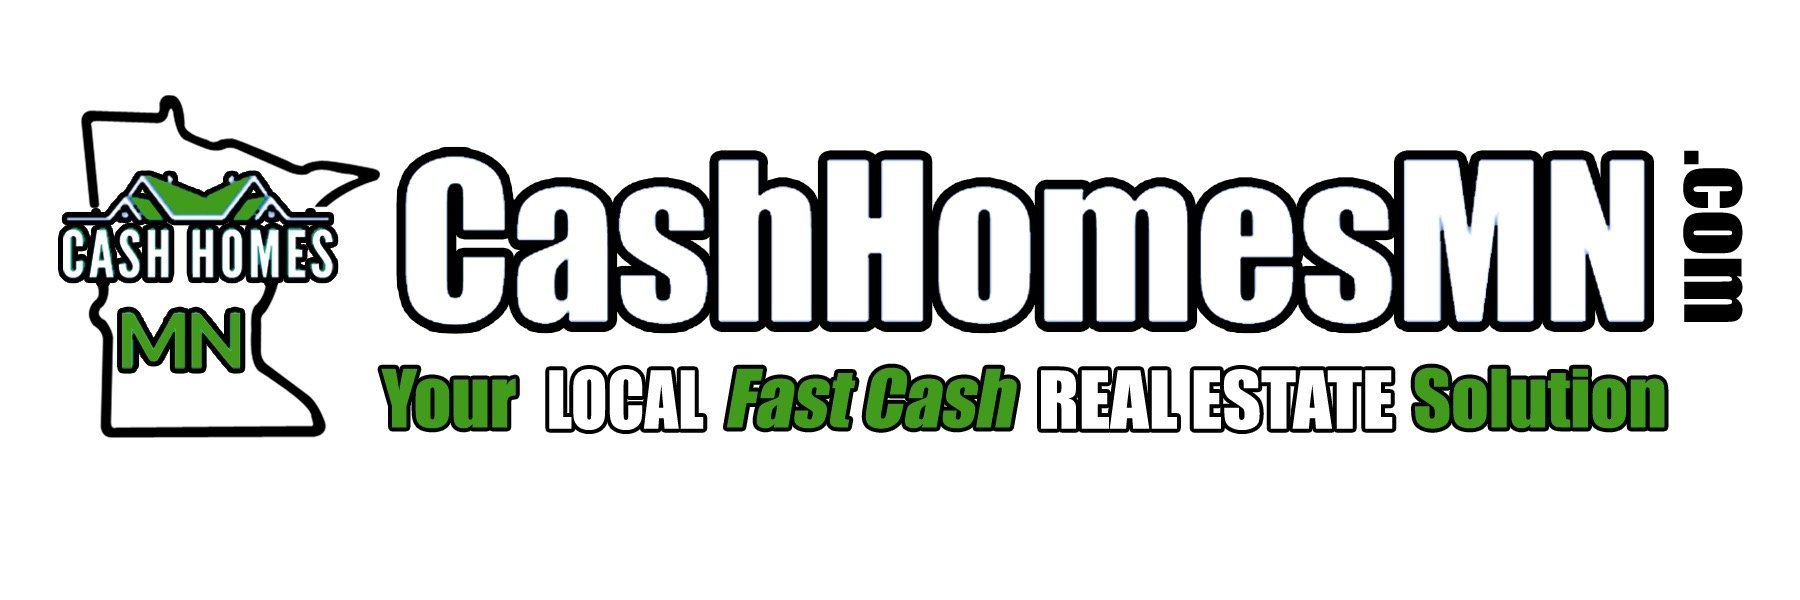 Sell Your House Fast MN – We Buy Houses MN – Cash Homes MN logo